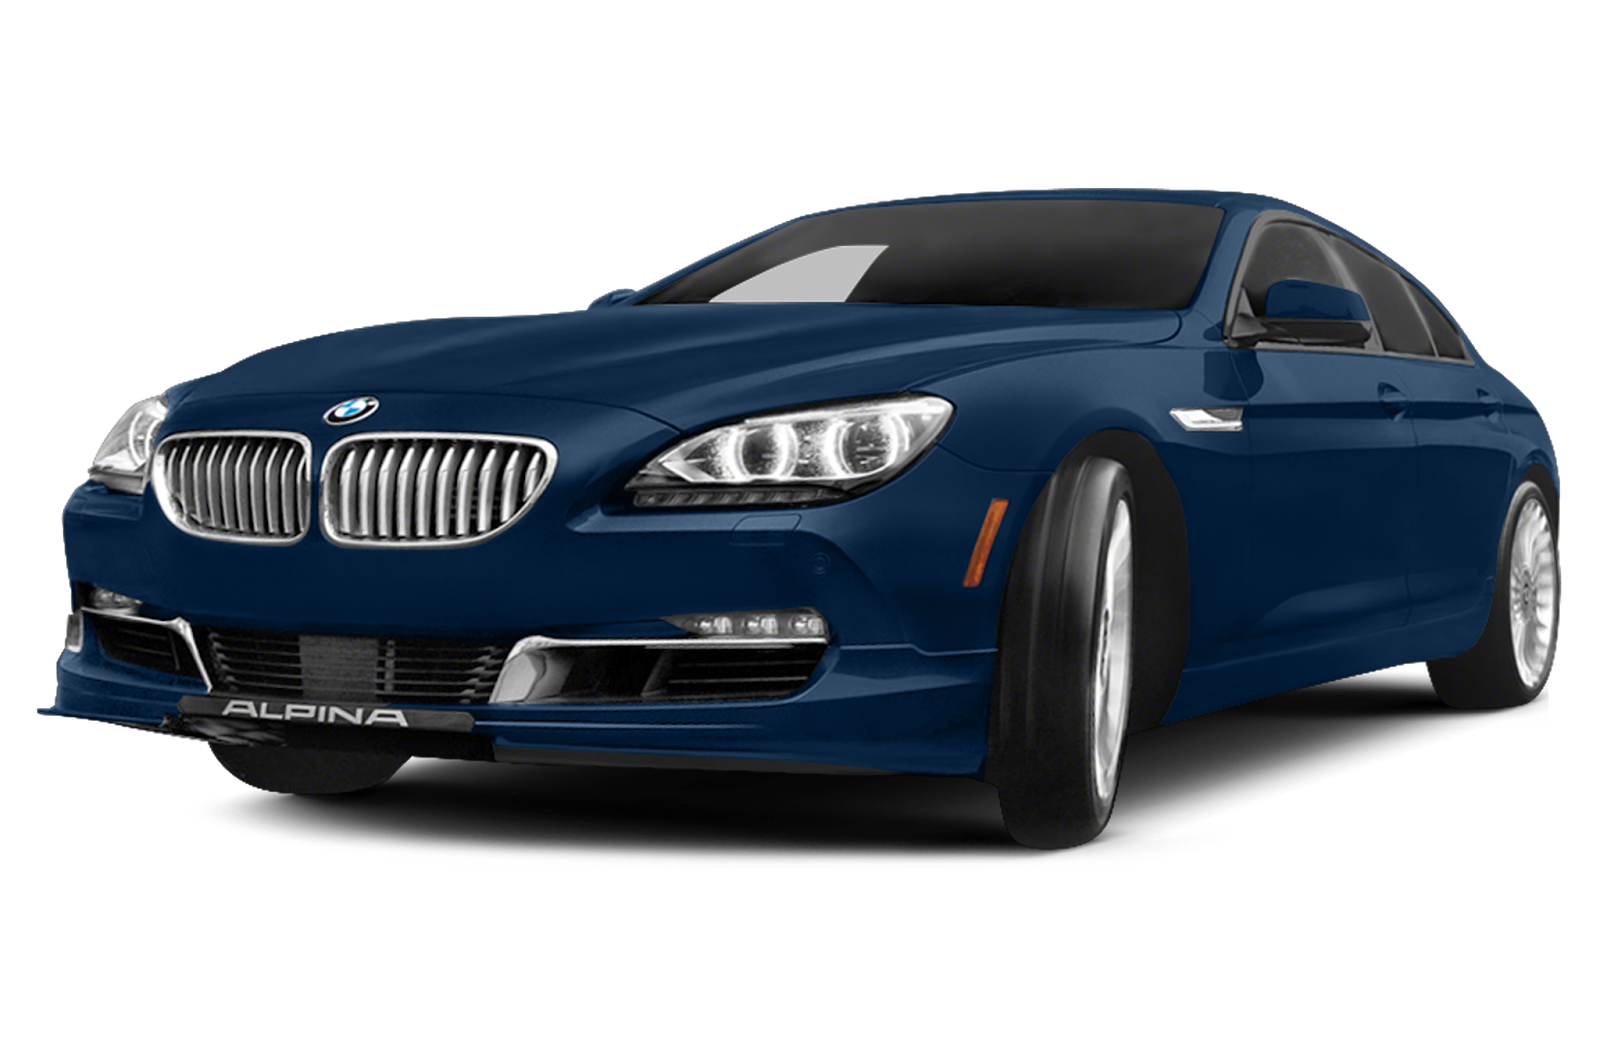 2015 BMW ALPINA B6 Gran Coupe High Resolution Pictures